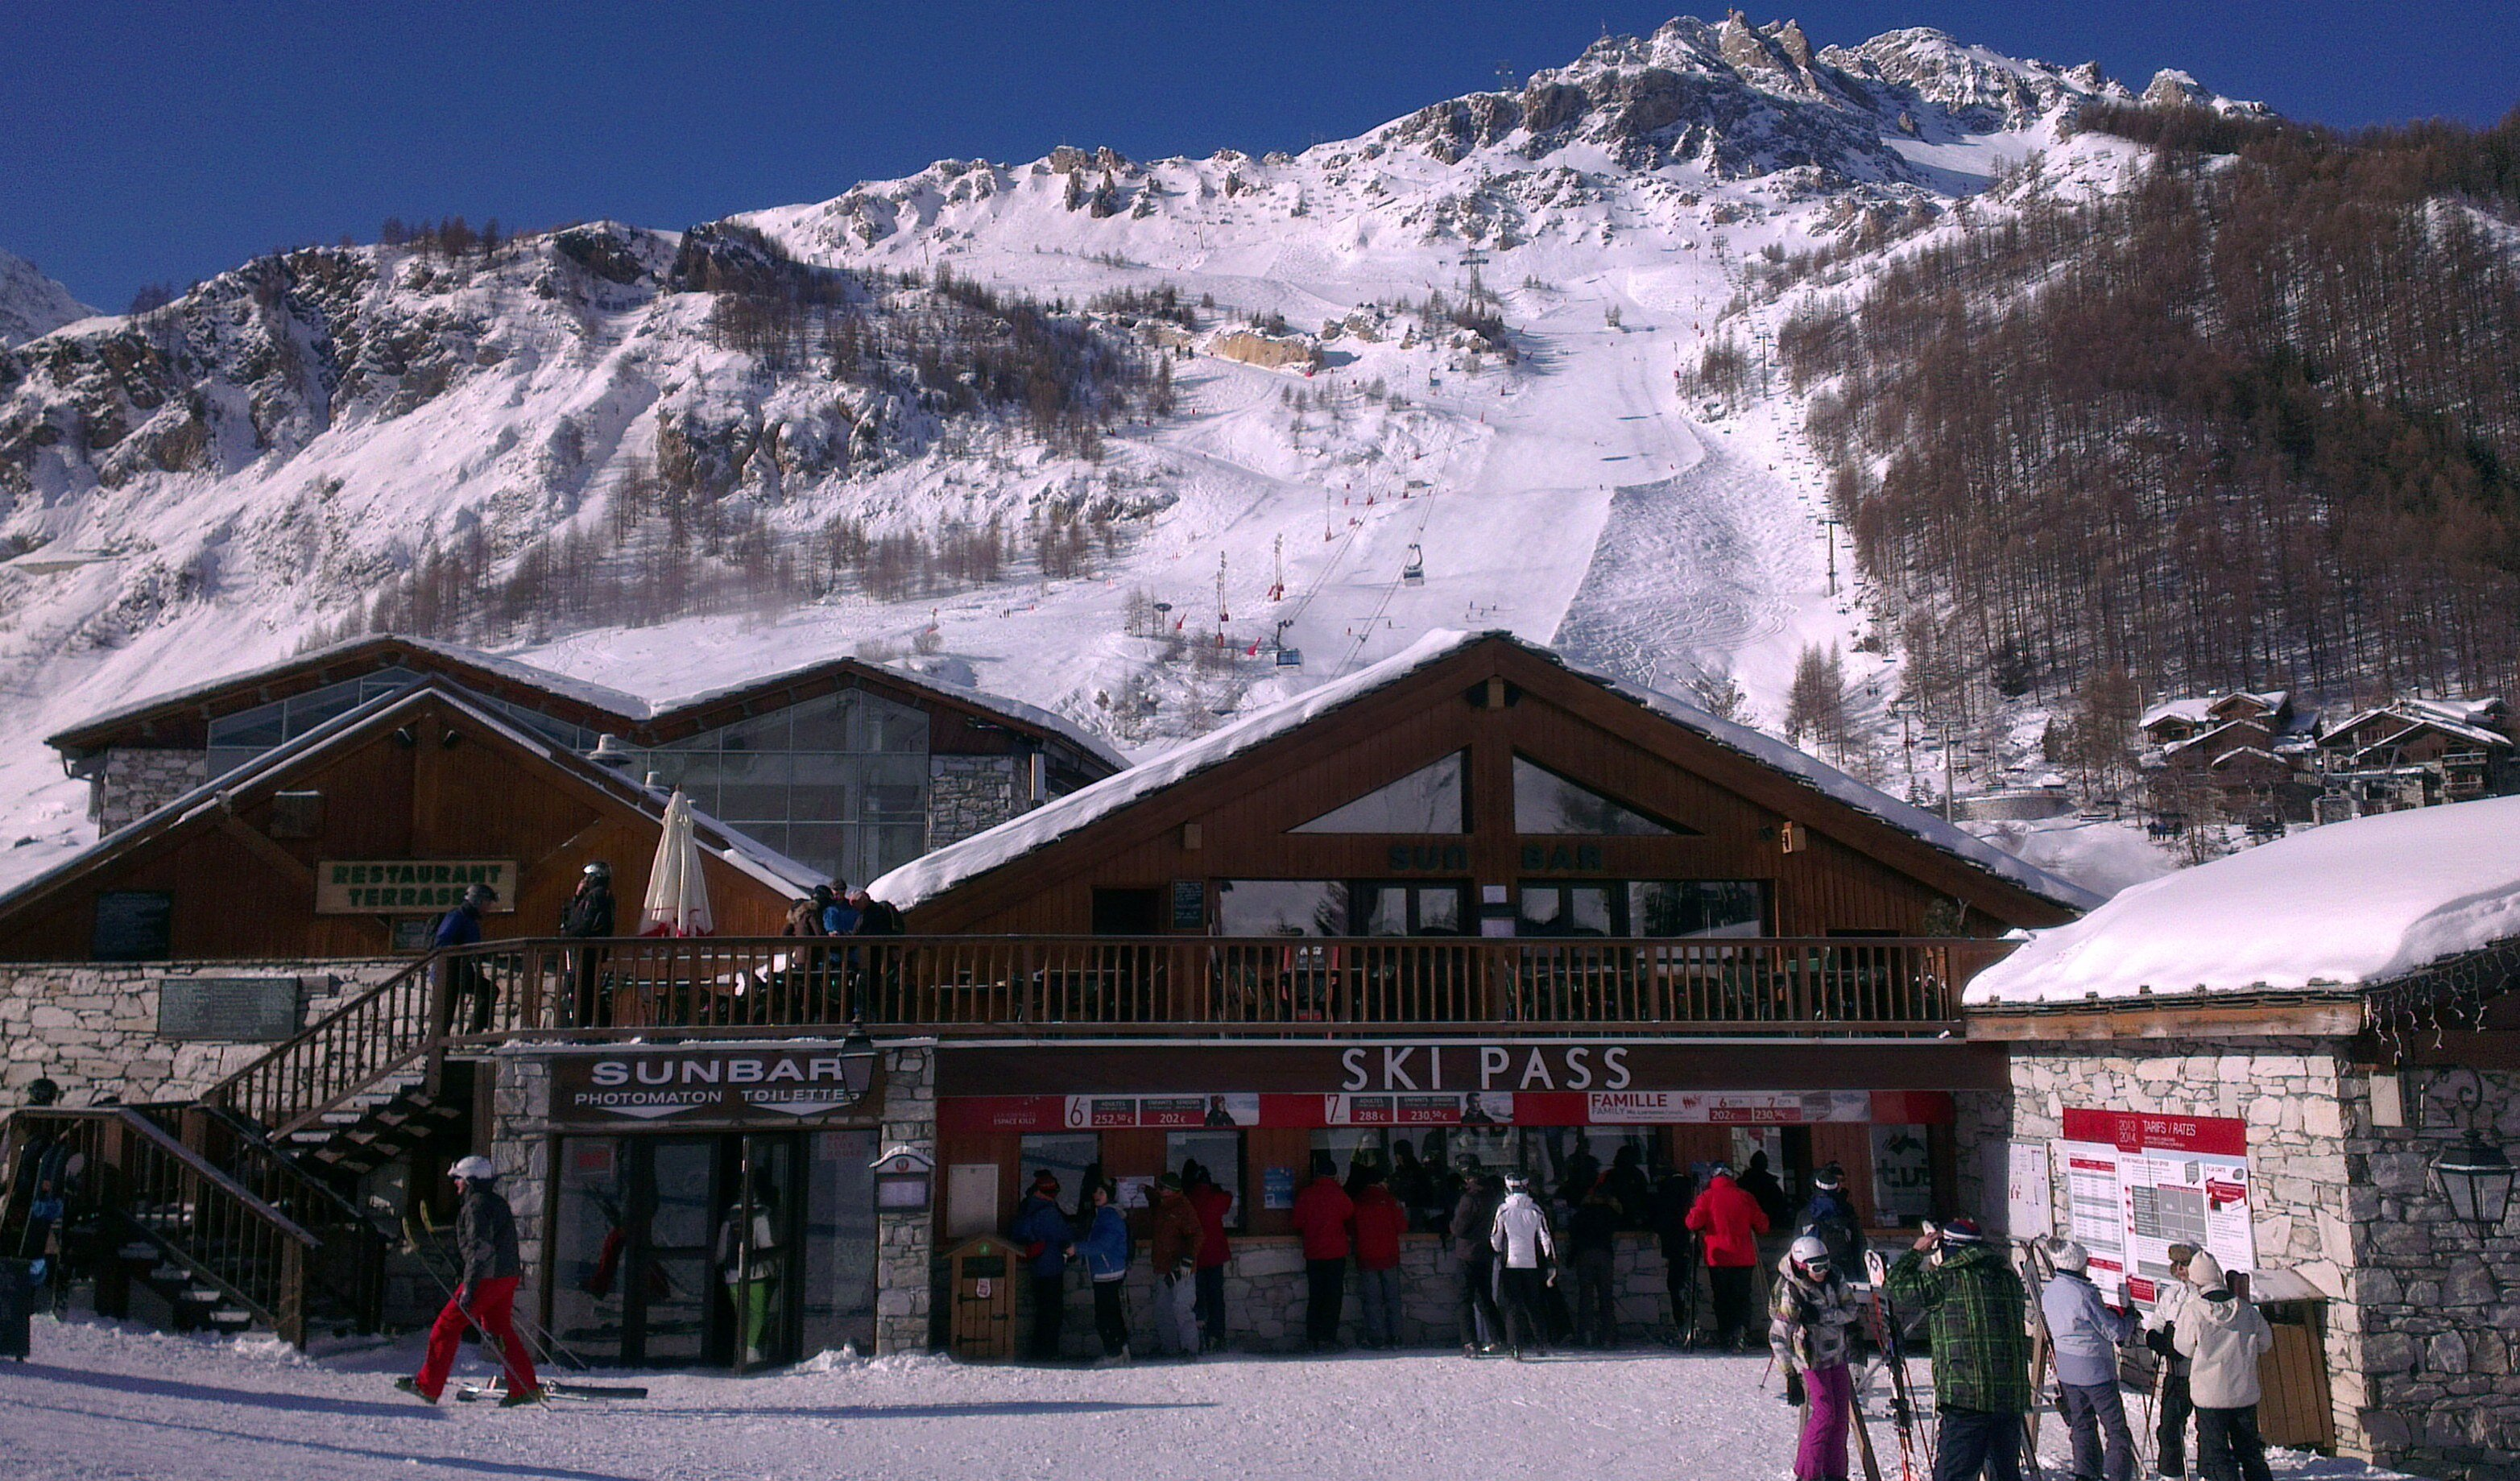 Ski/Lift Pass Offices Val d'Isere